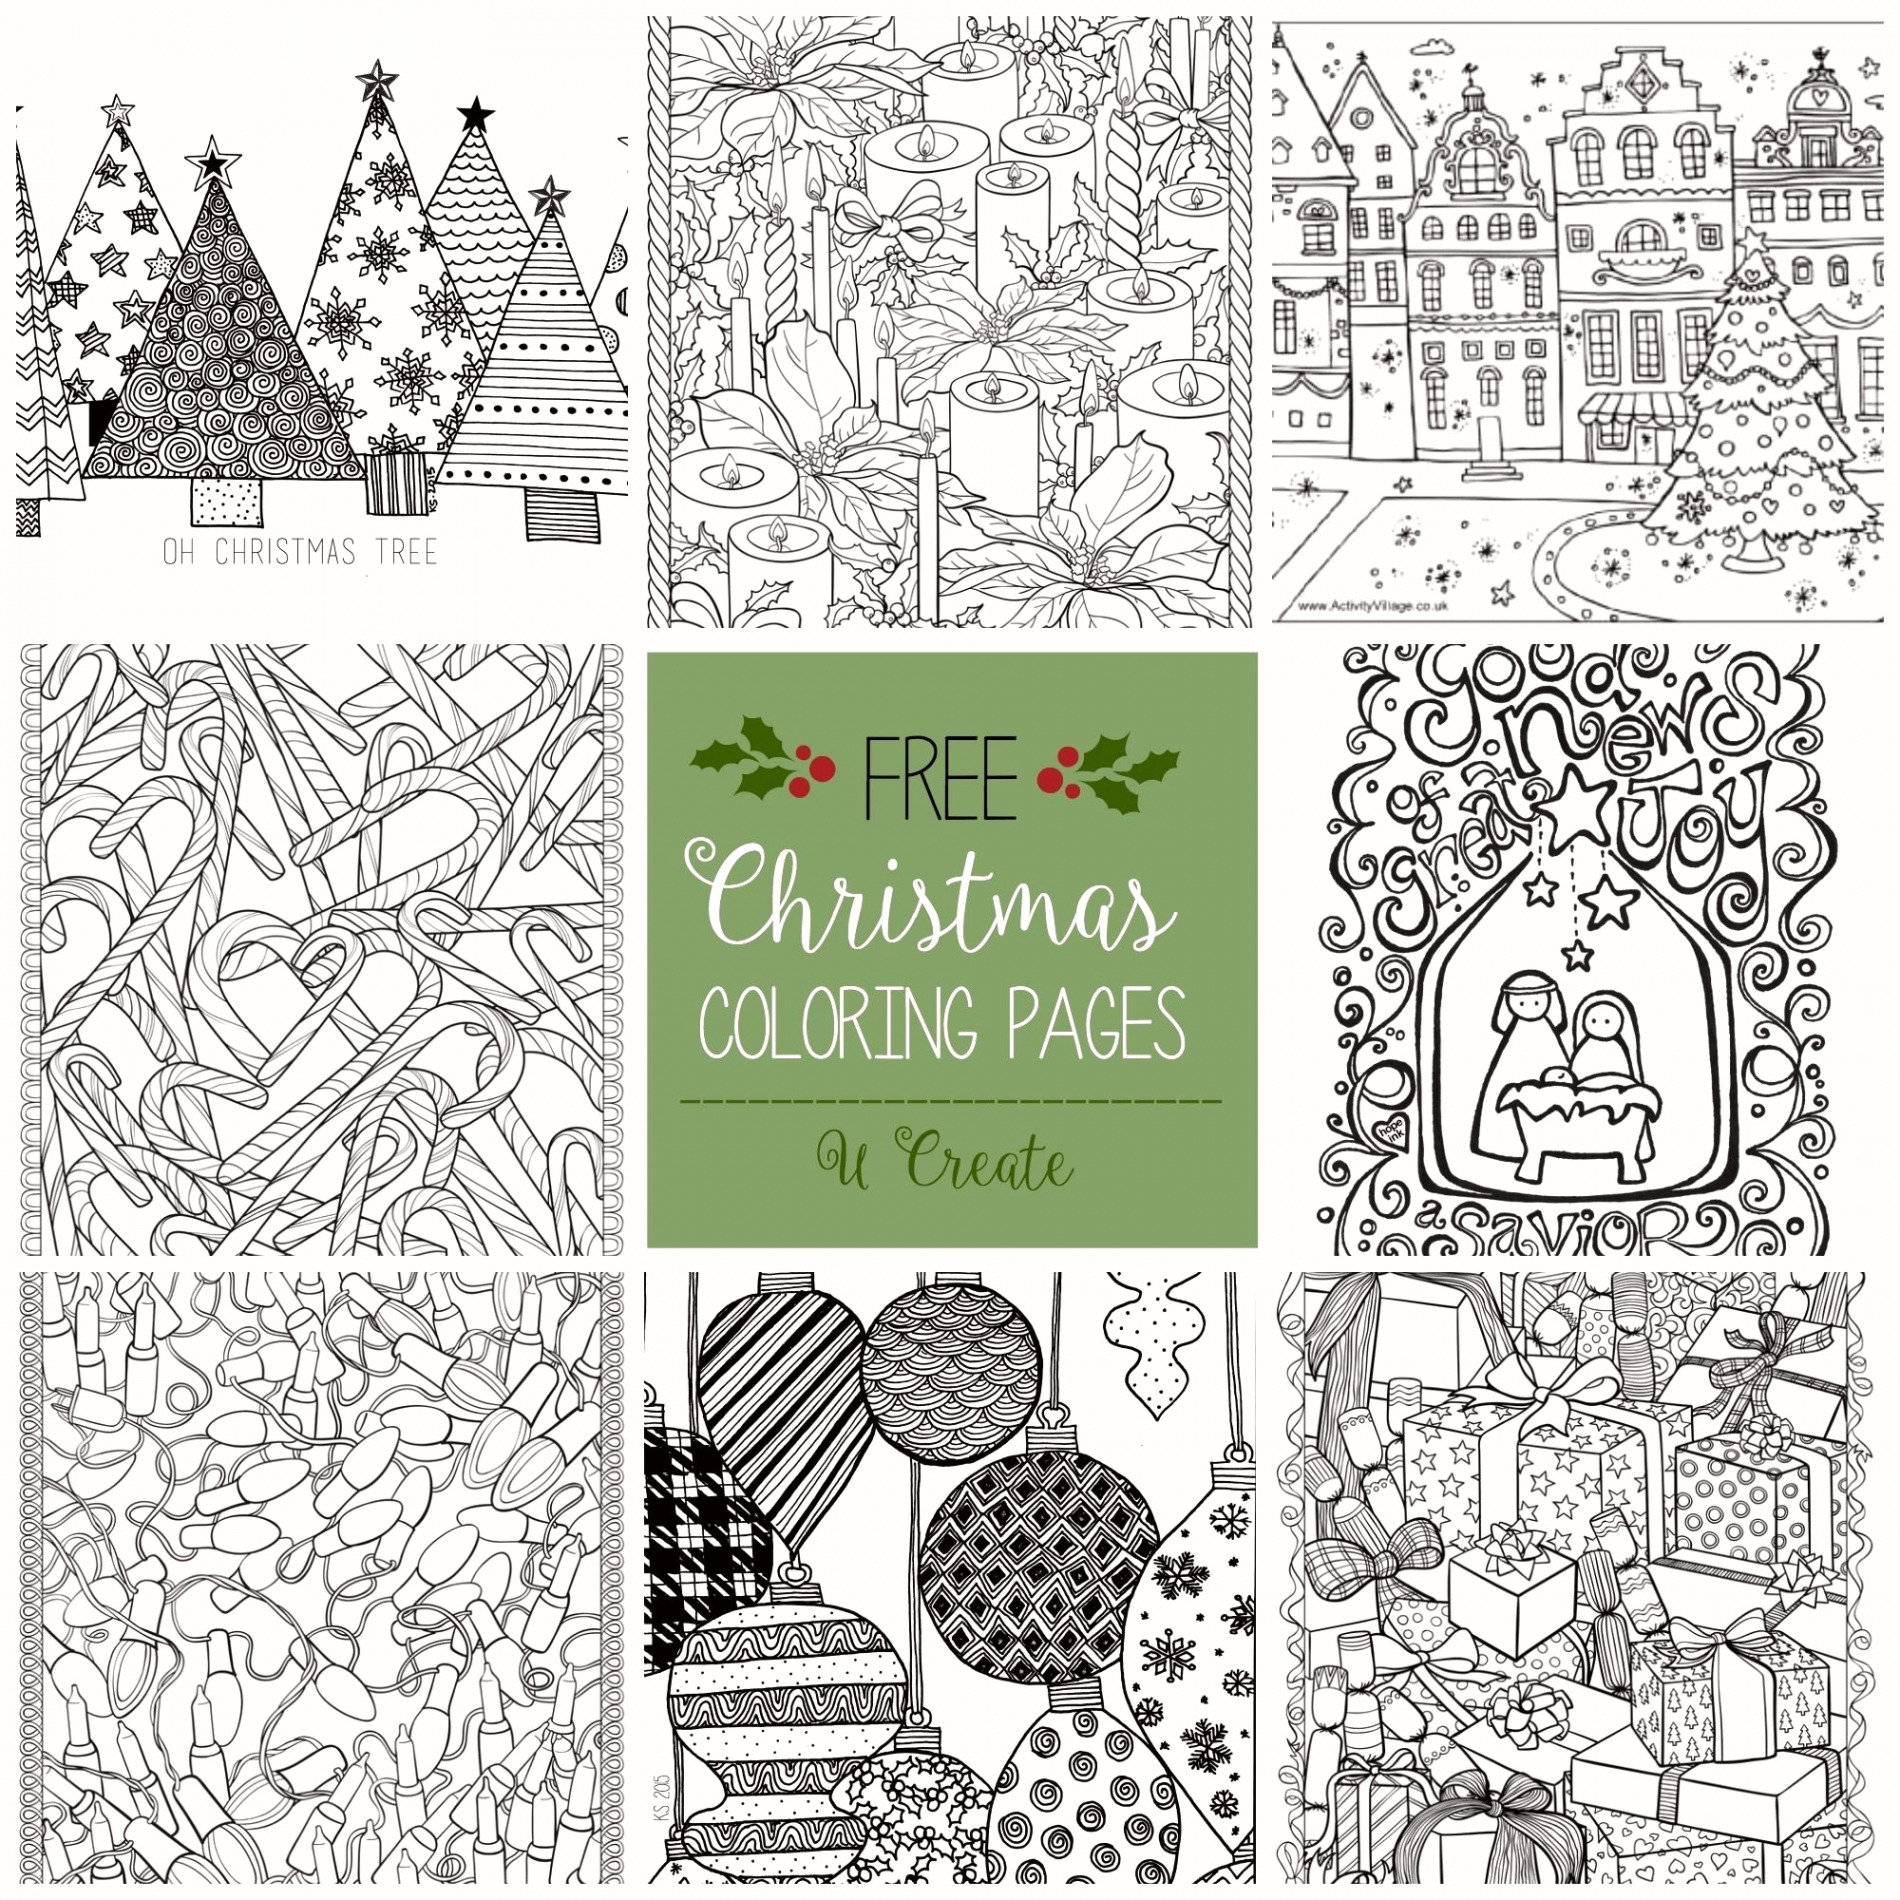 Christmas Coloring Sheets That You Can Print With Printables Pages Printable